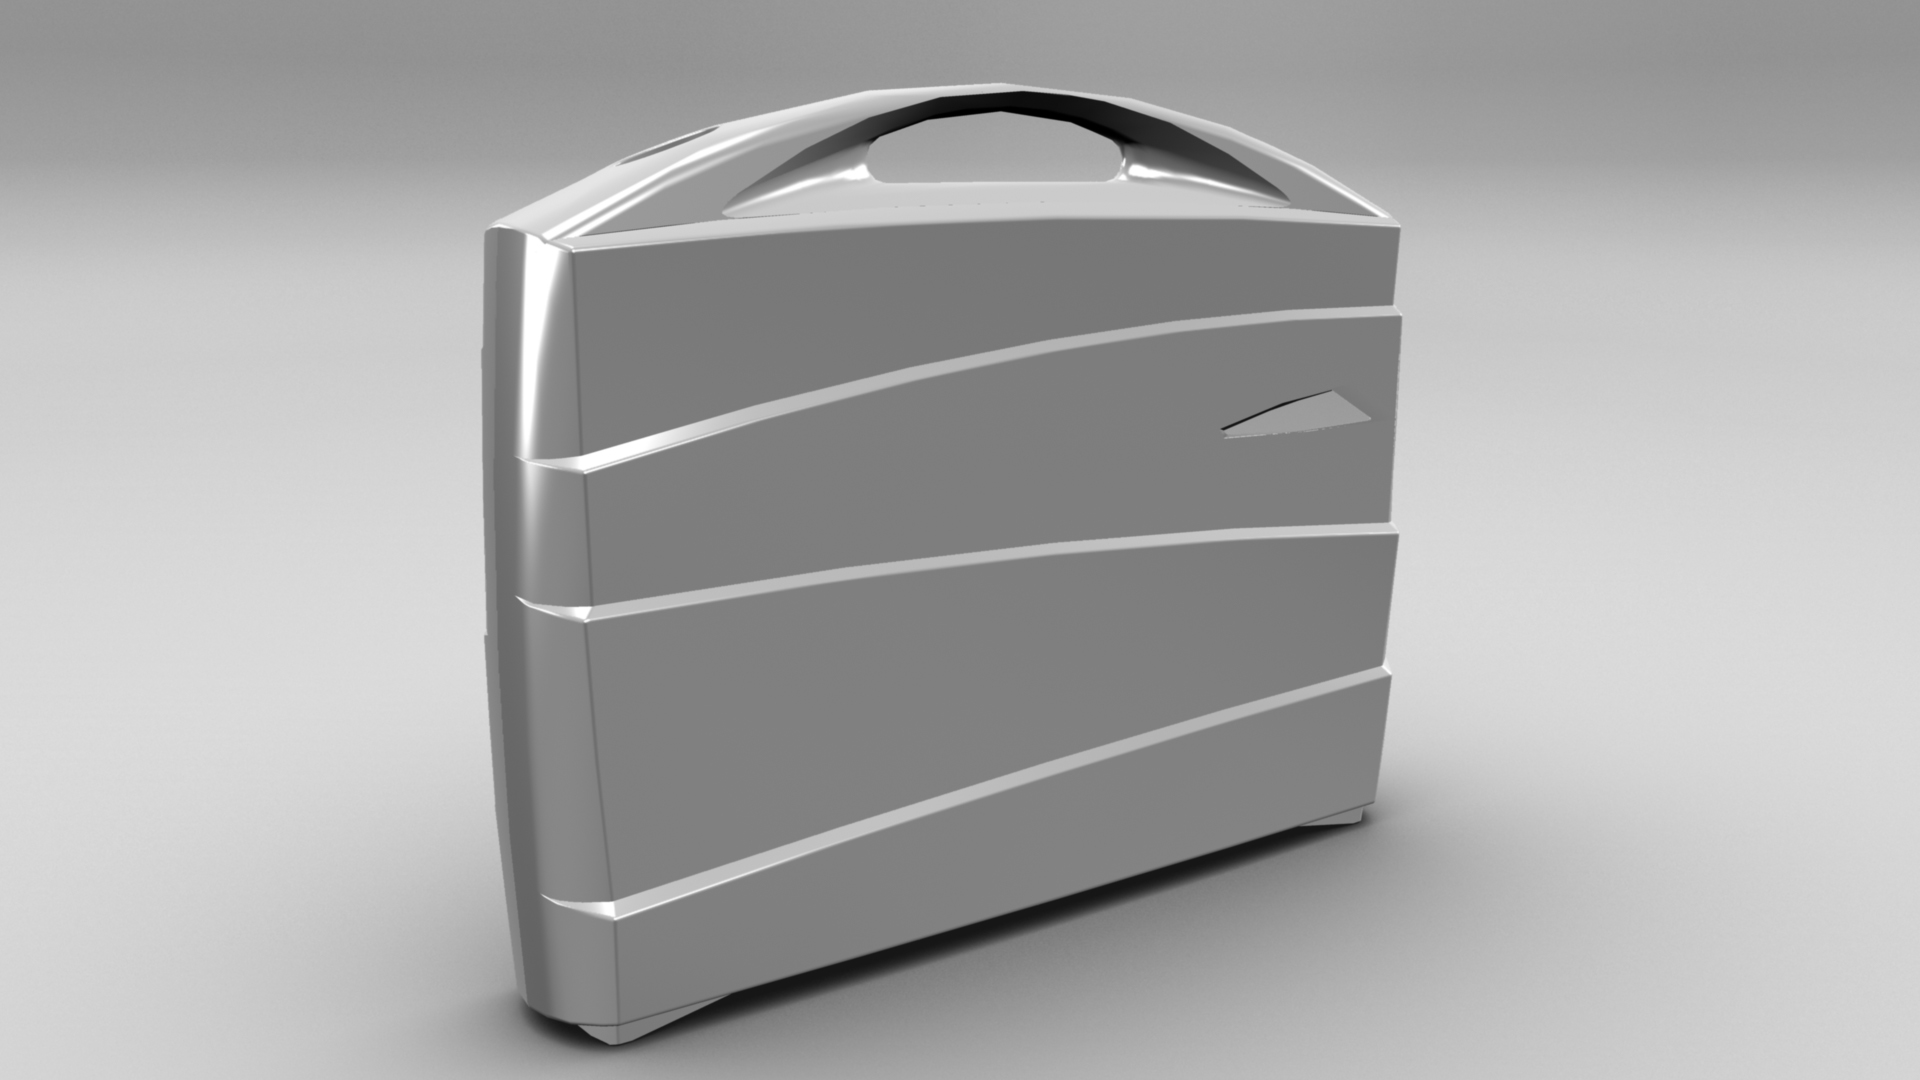 metal suitcase 3d model max fbx ma mb obj 286027